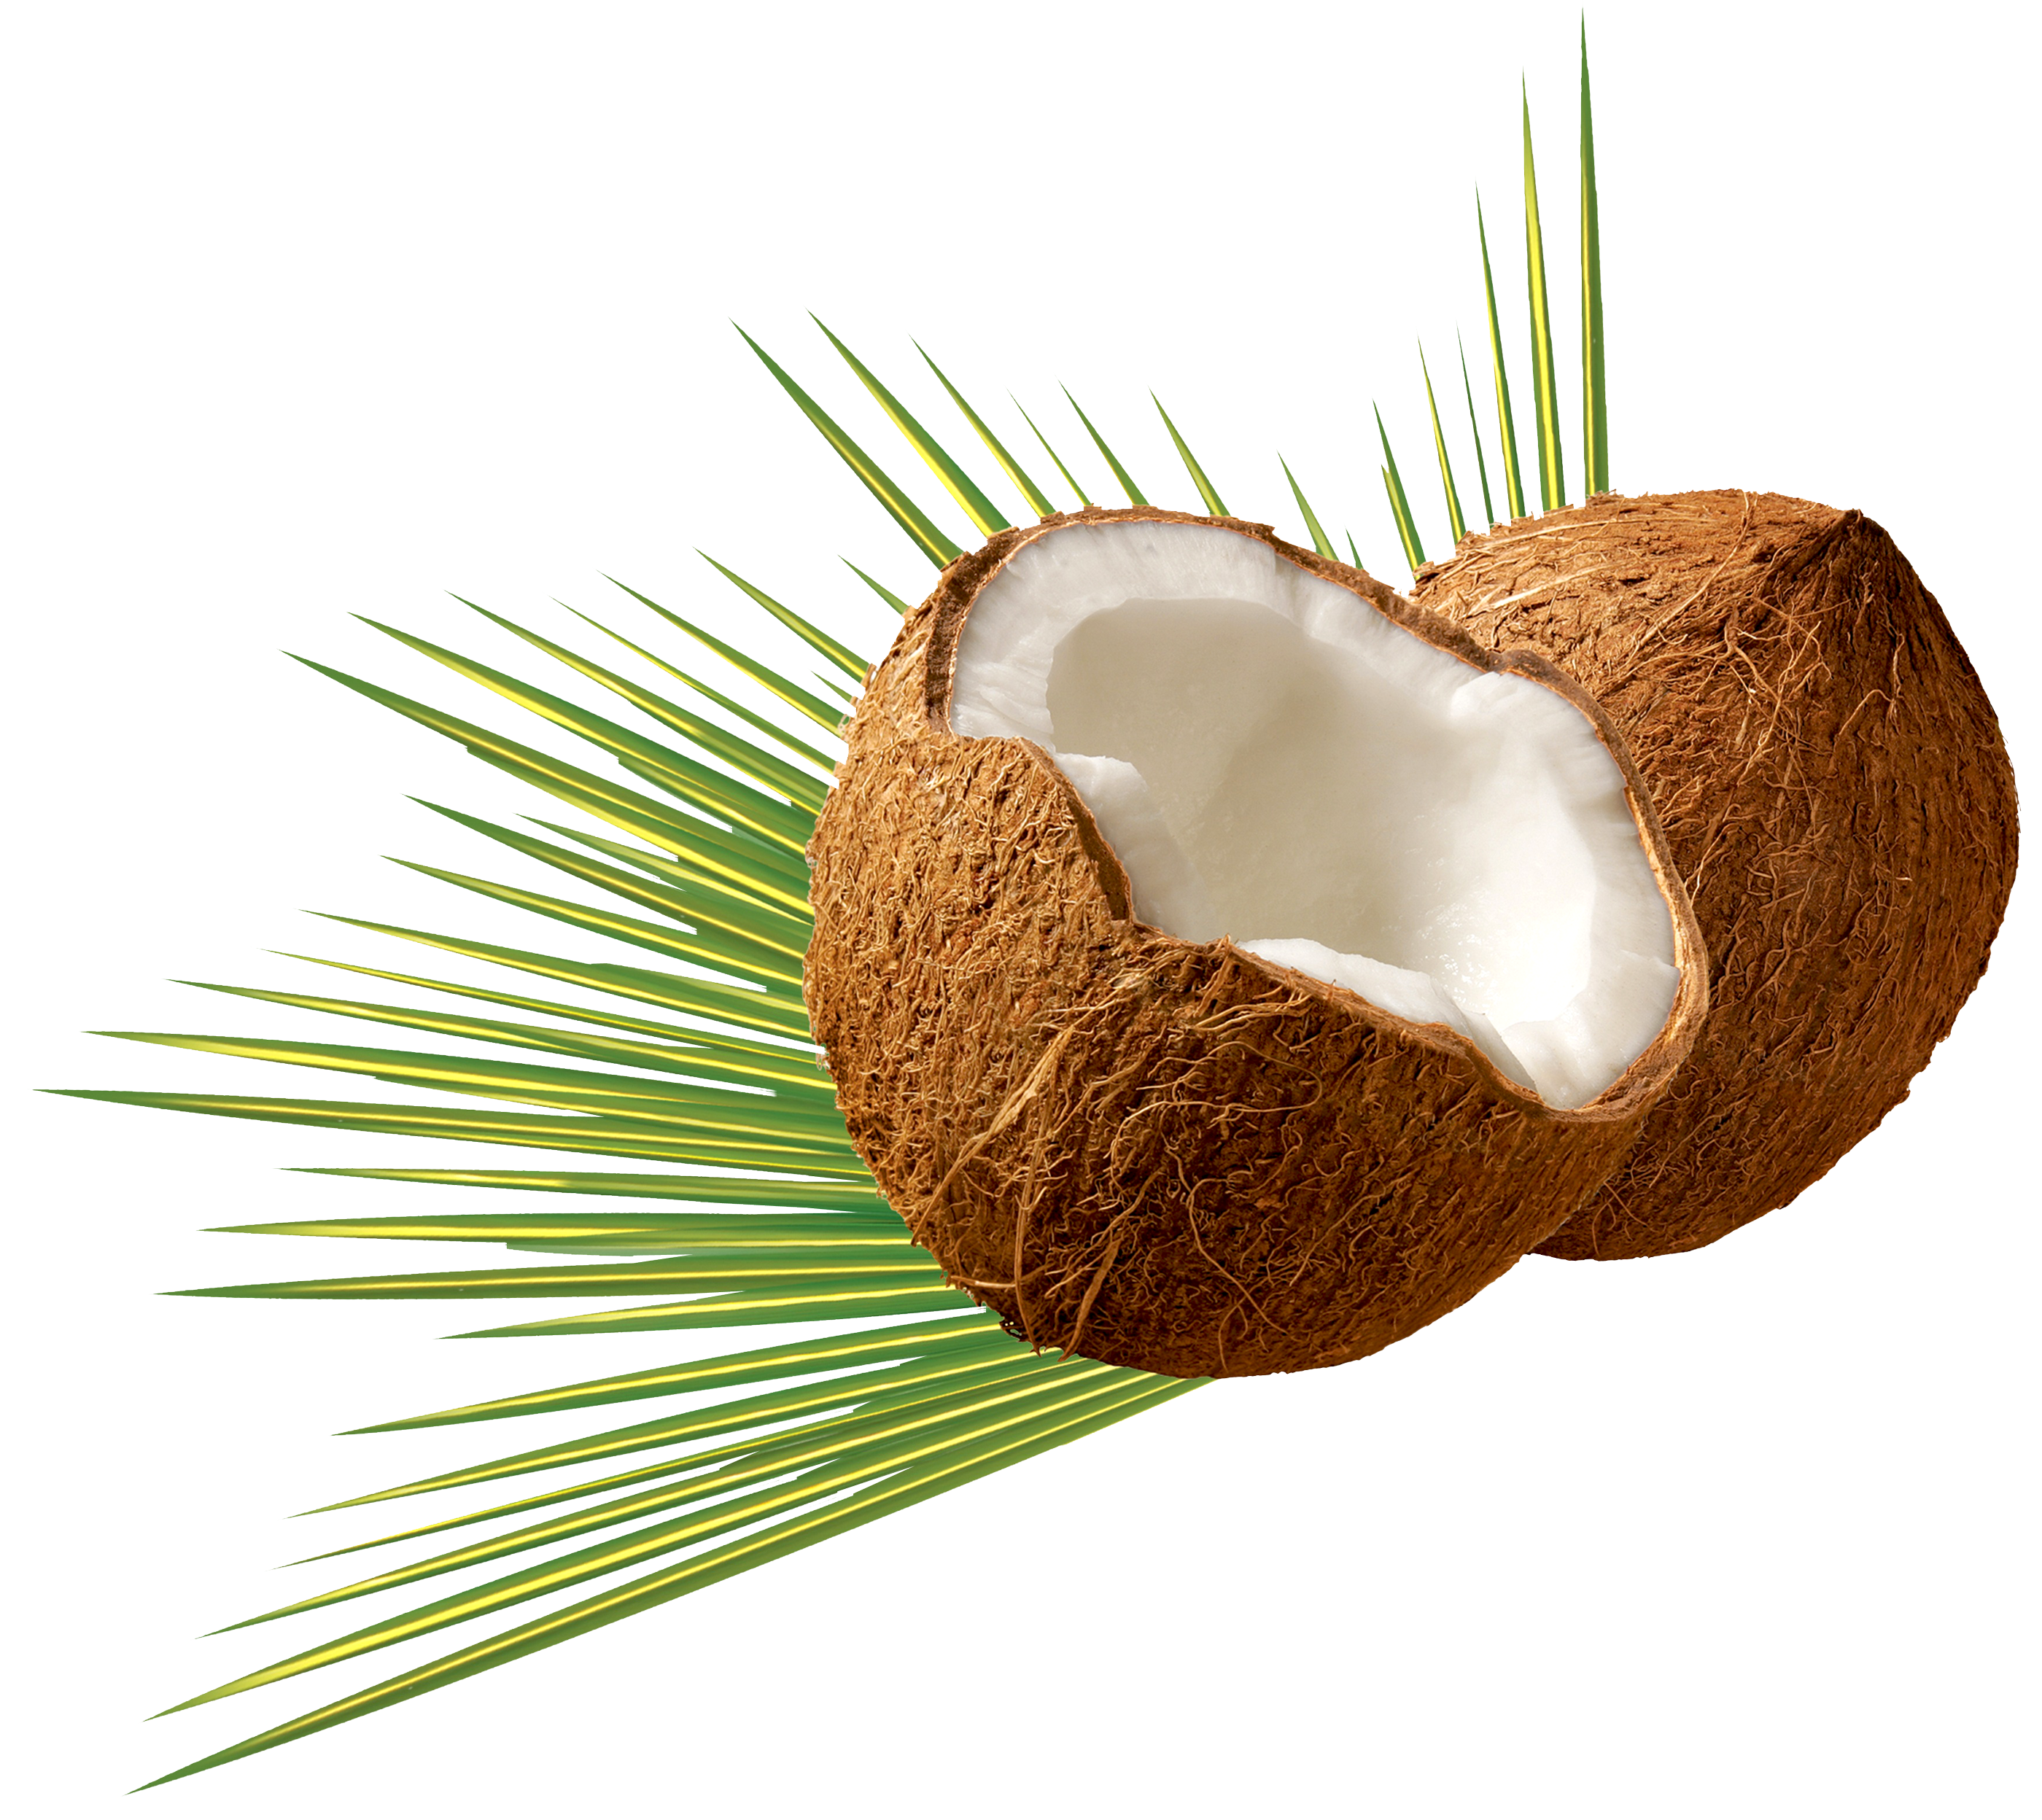 Coconut HD PNG - 93825